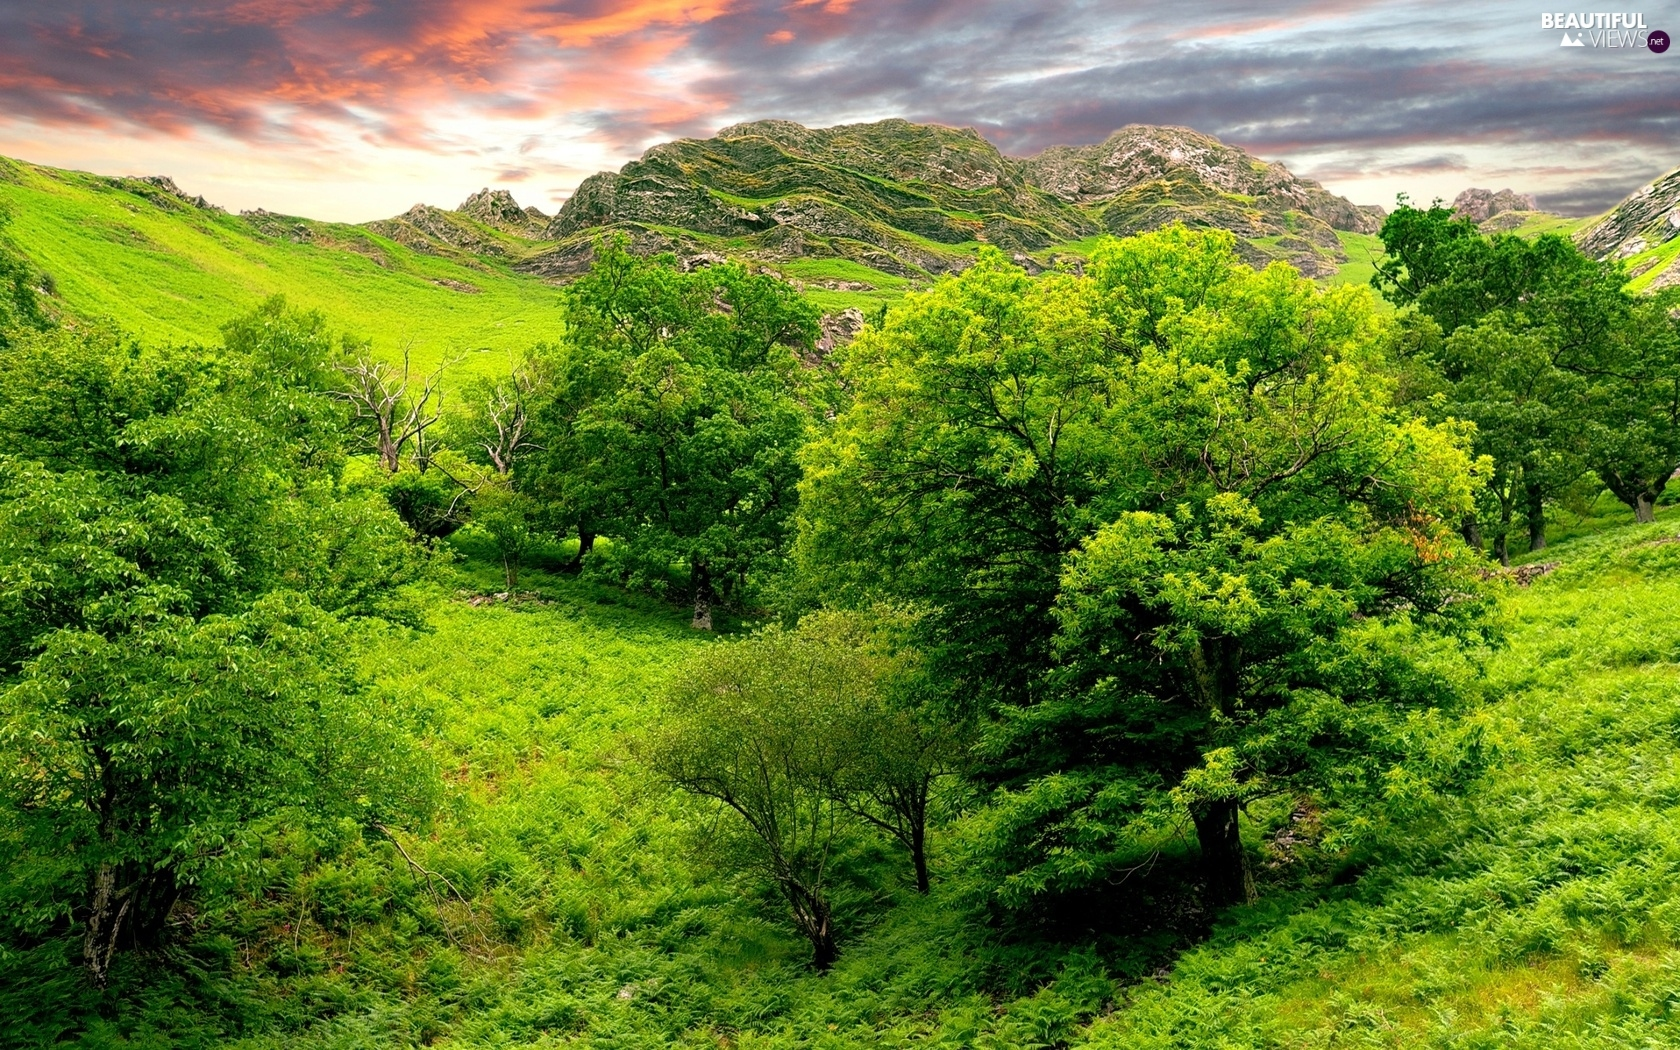 Green, Valley, trees, viewes, rocks